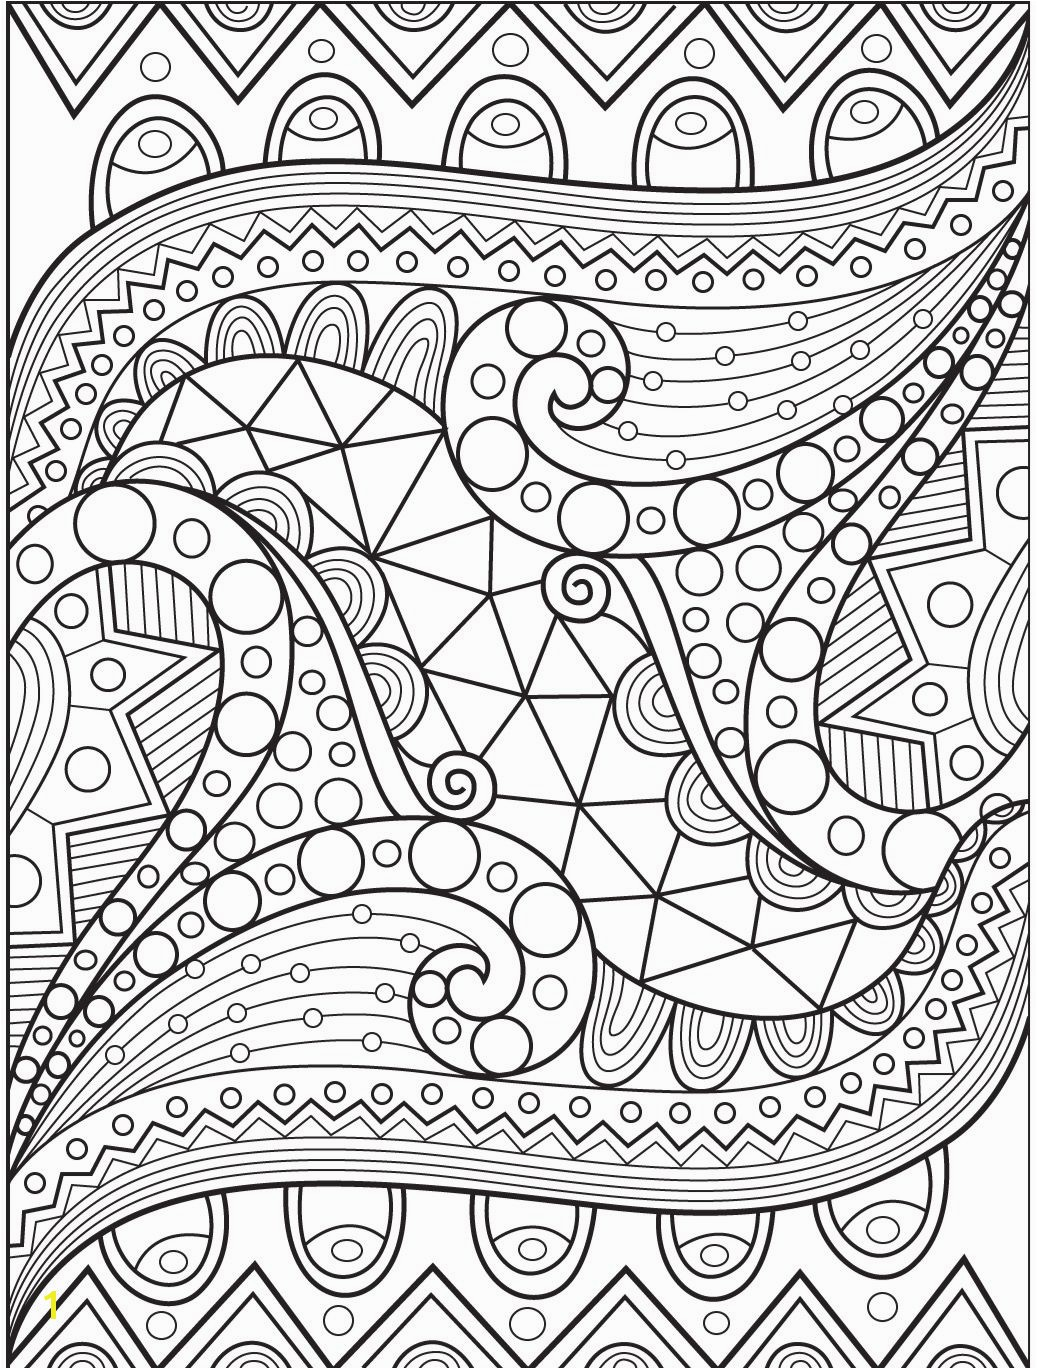 Stream Coloring Page Abstract Coloring Page On Colorish Coloring Book App for Adults by